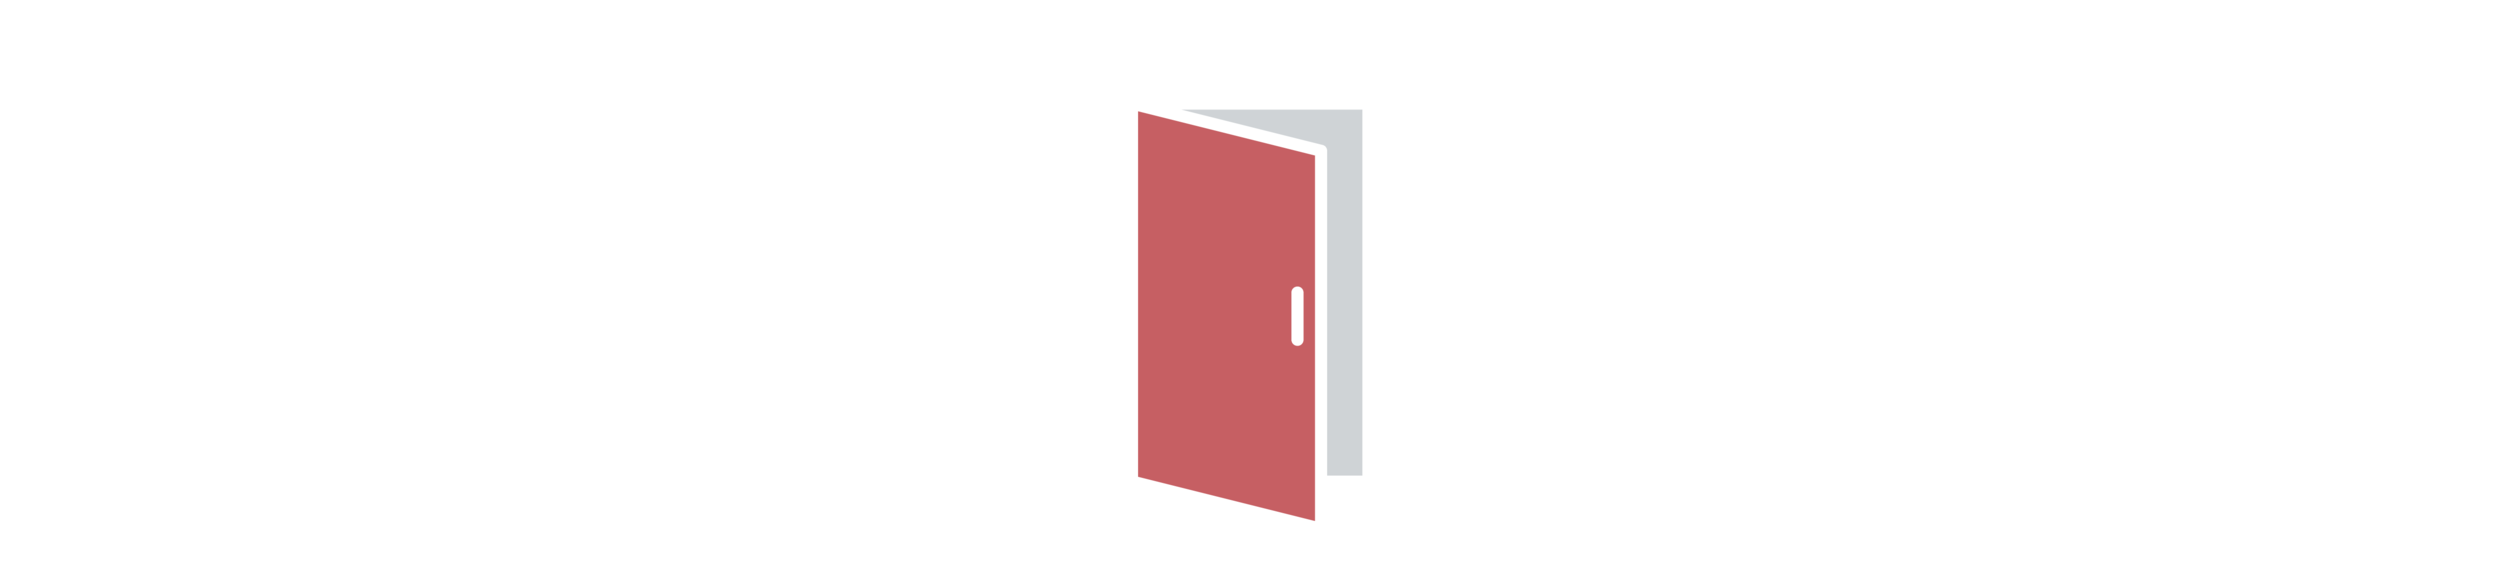 icon-Builder03.png